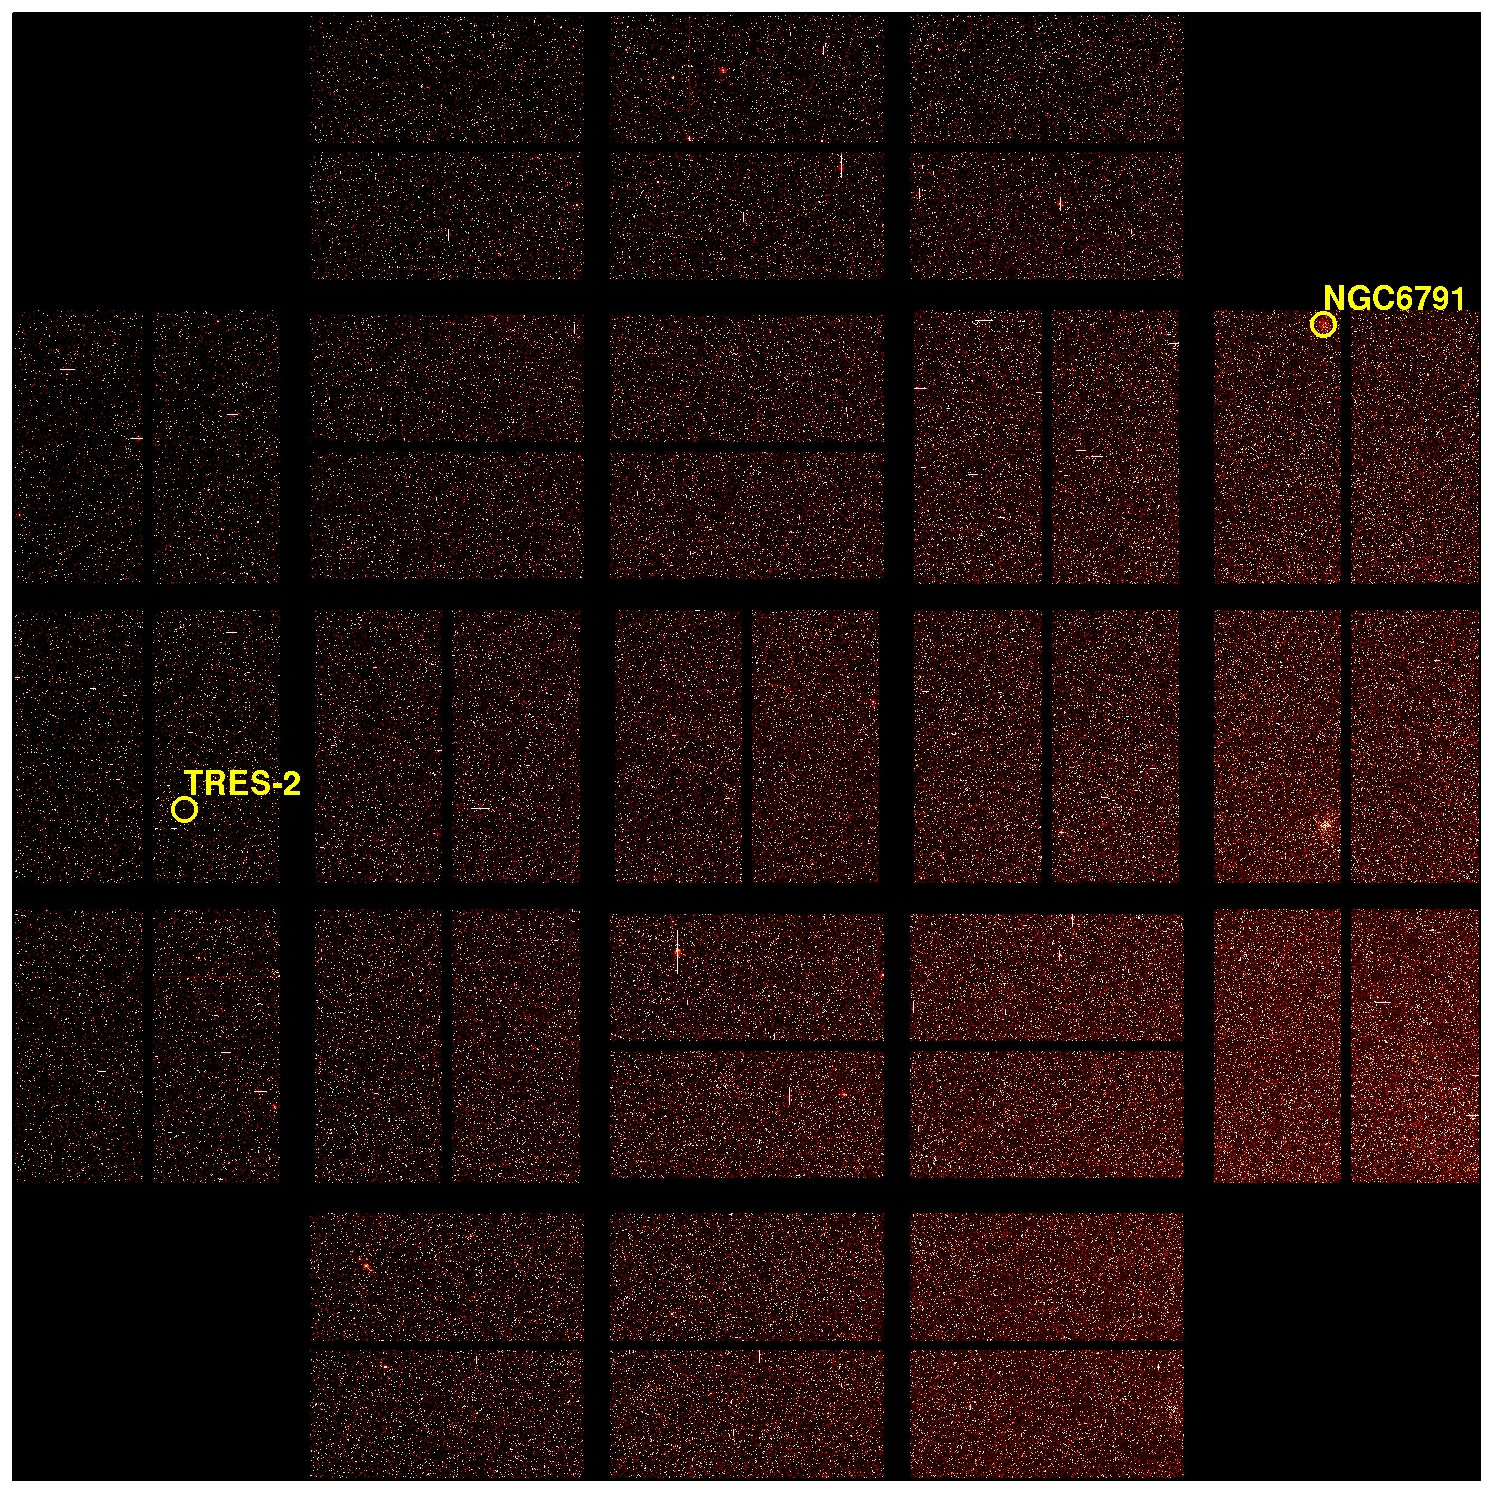 Full Focal Plane Image (First Light for Kepler Photometer) with labels